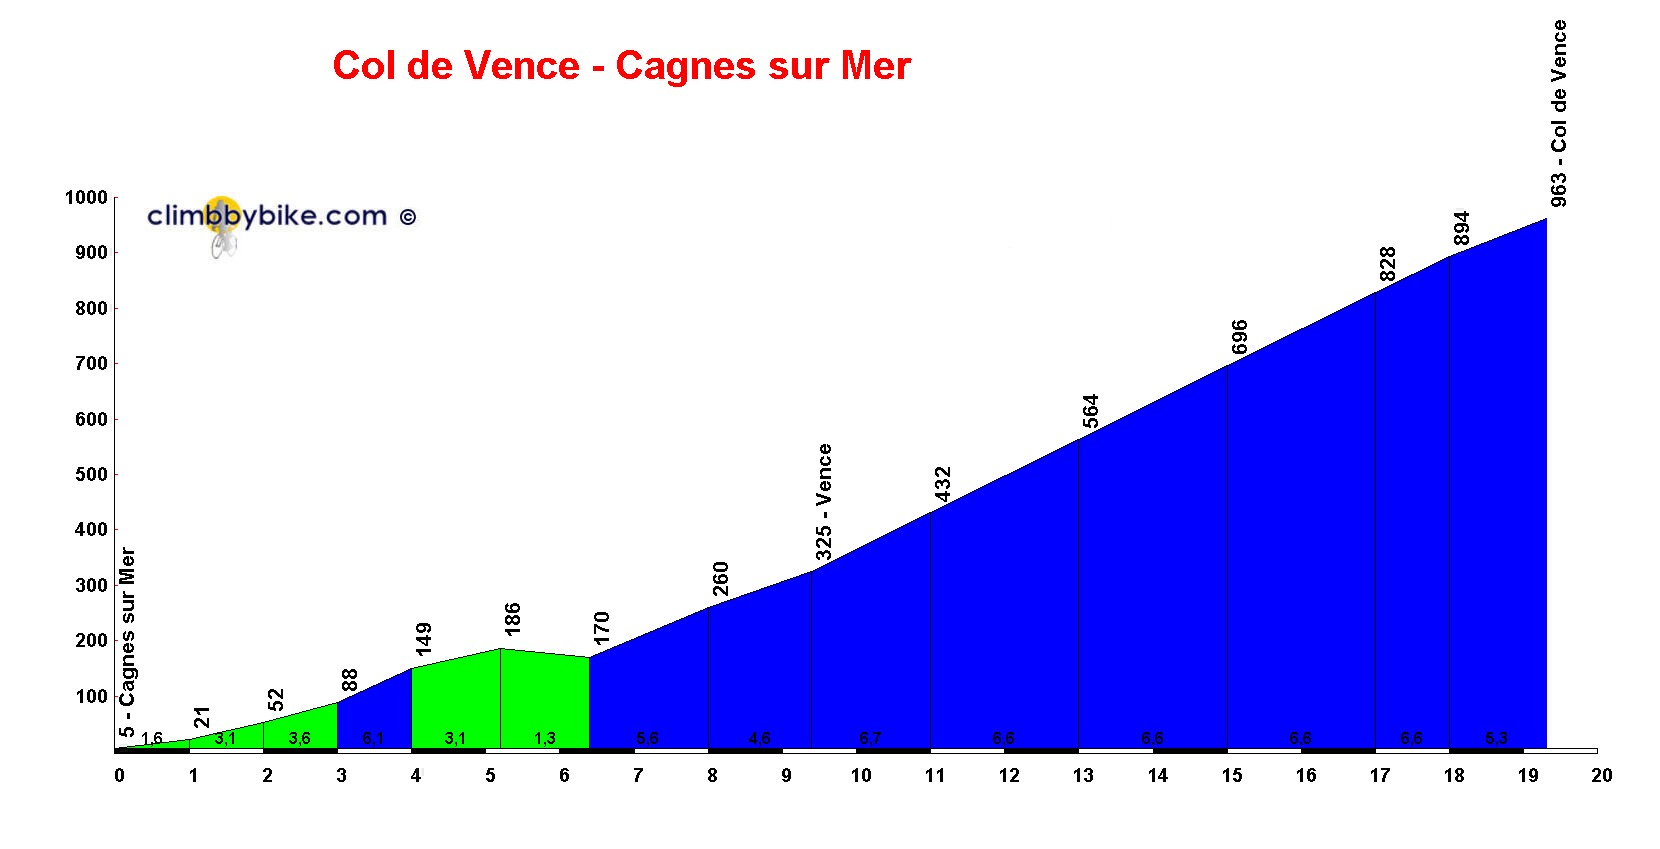 Elevation profile for Col de Vence